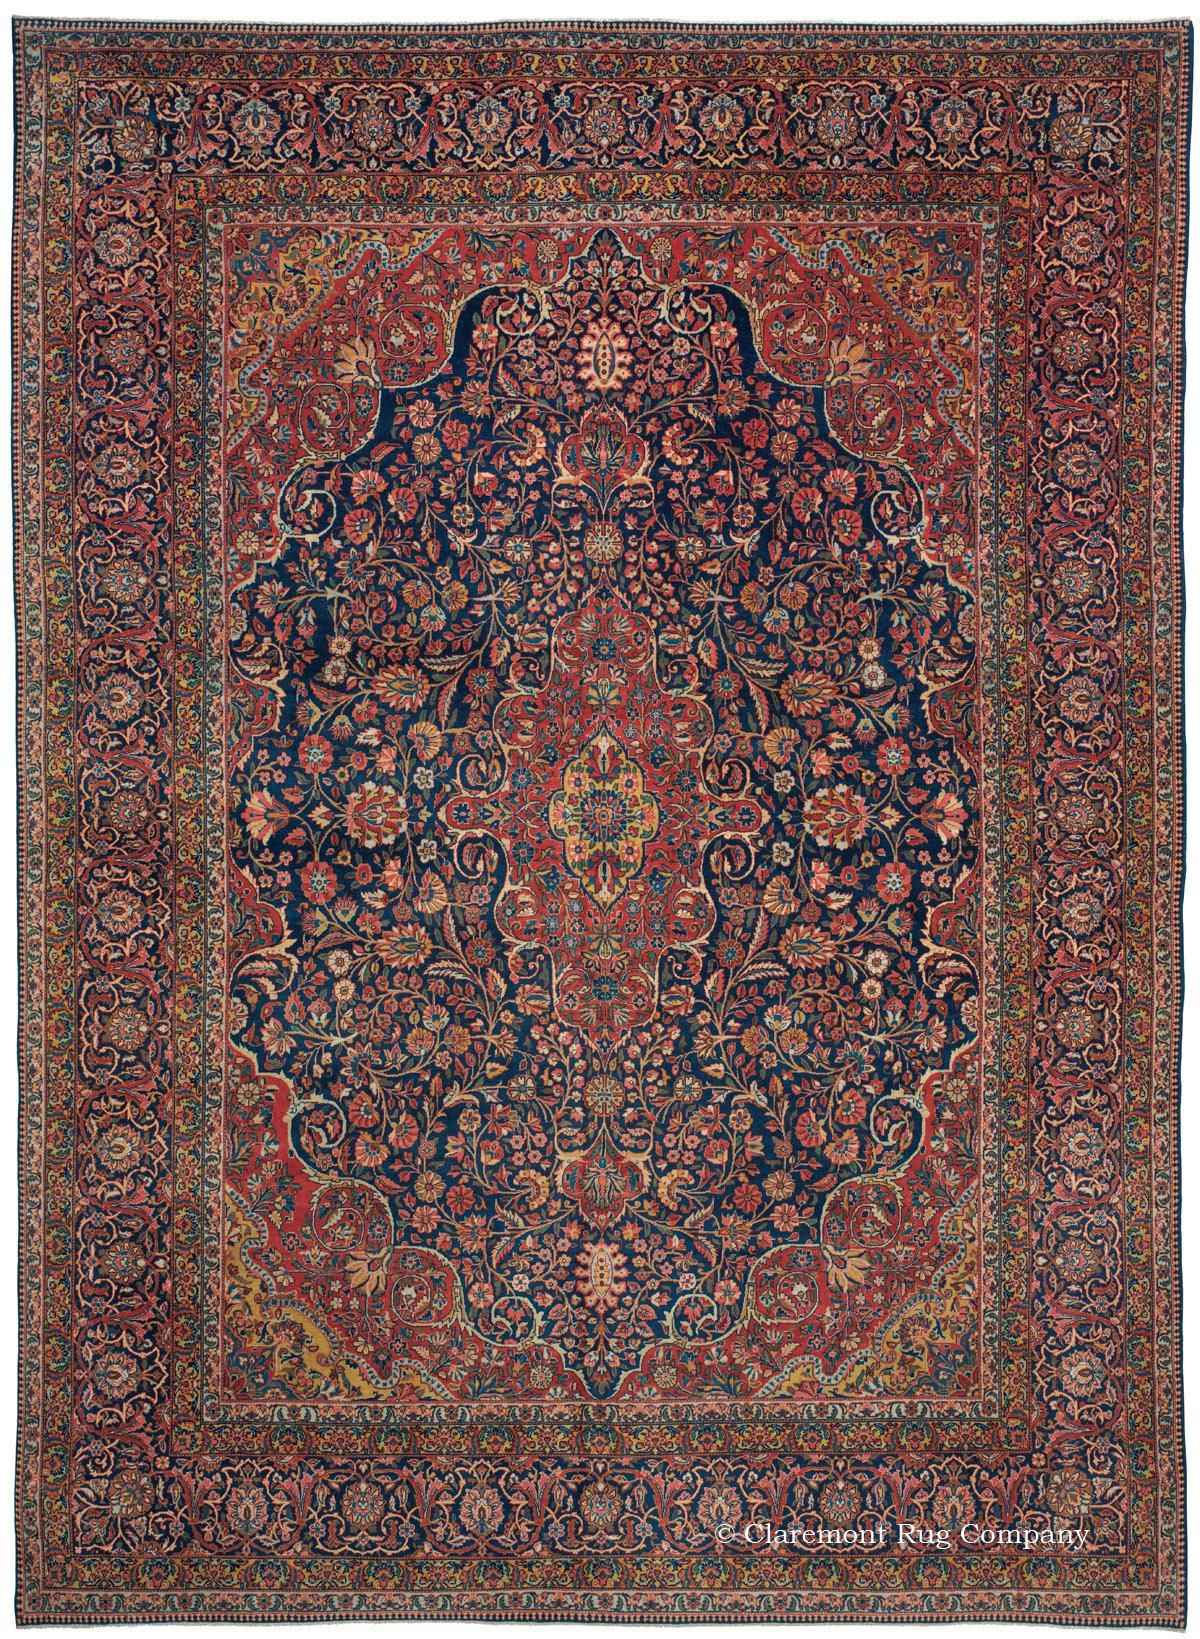 Kashan Central Persian 8ft 10in X 12ft 0in Circa 1920 Persian Carpet Antique Persian Carpet Rugs On Carpet